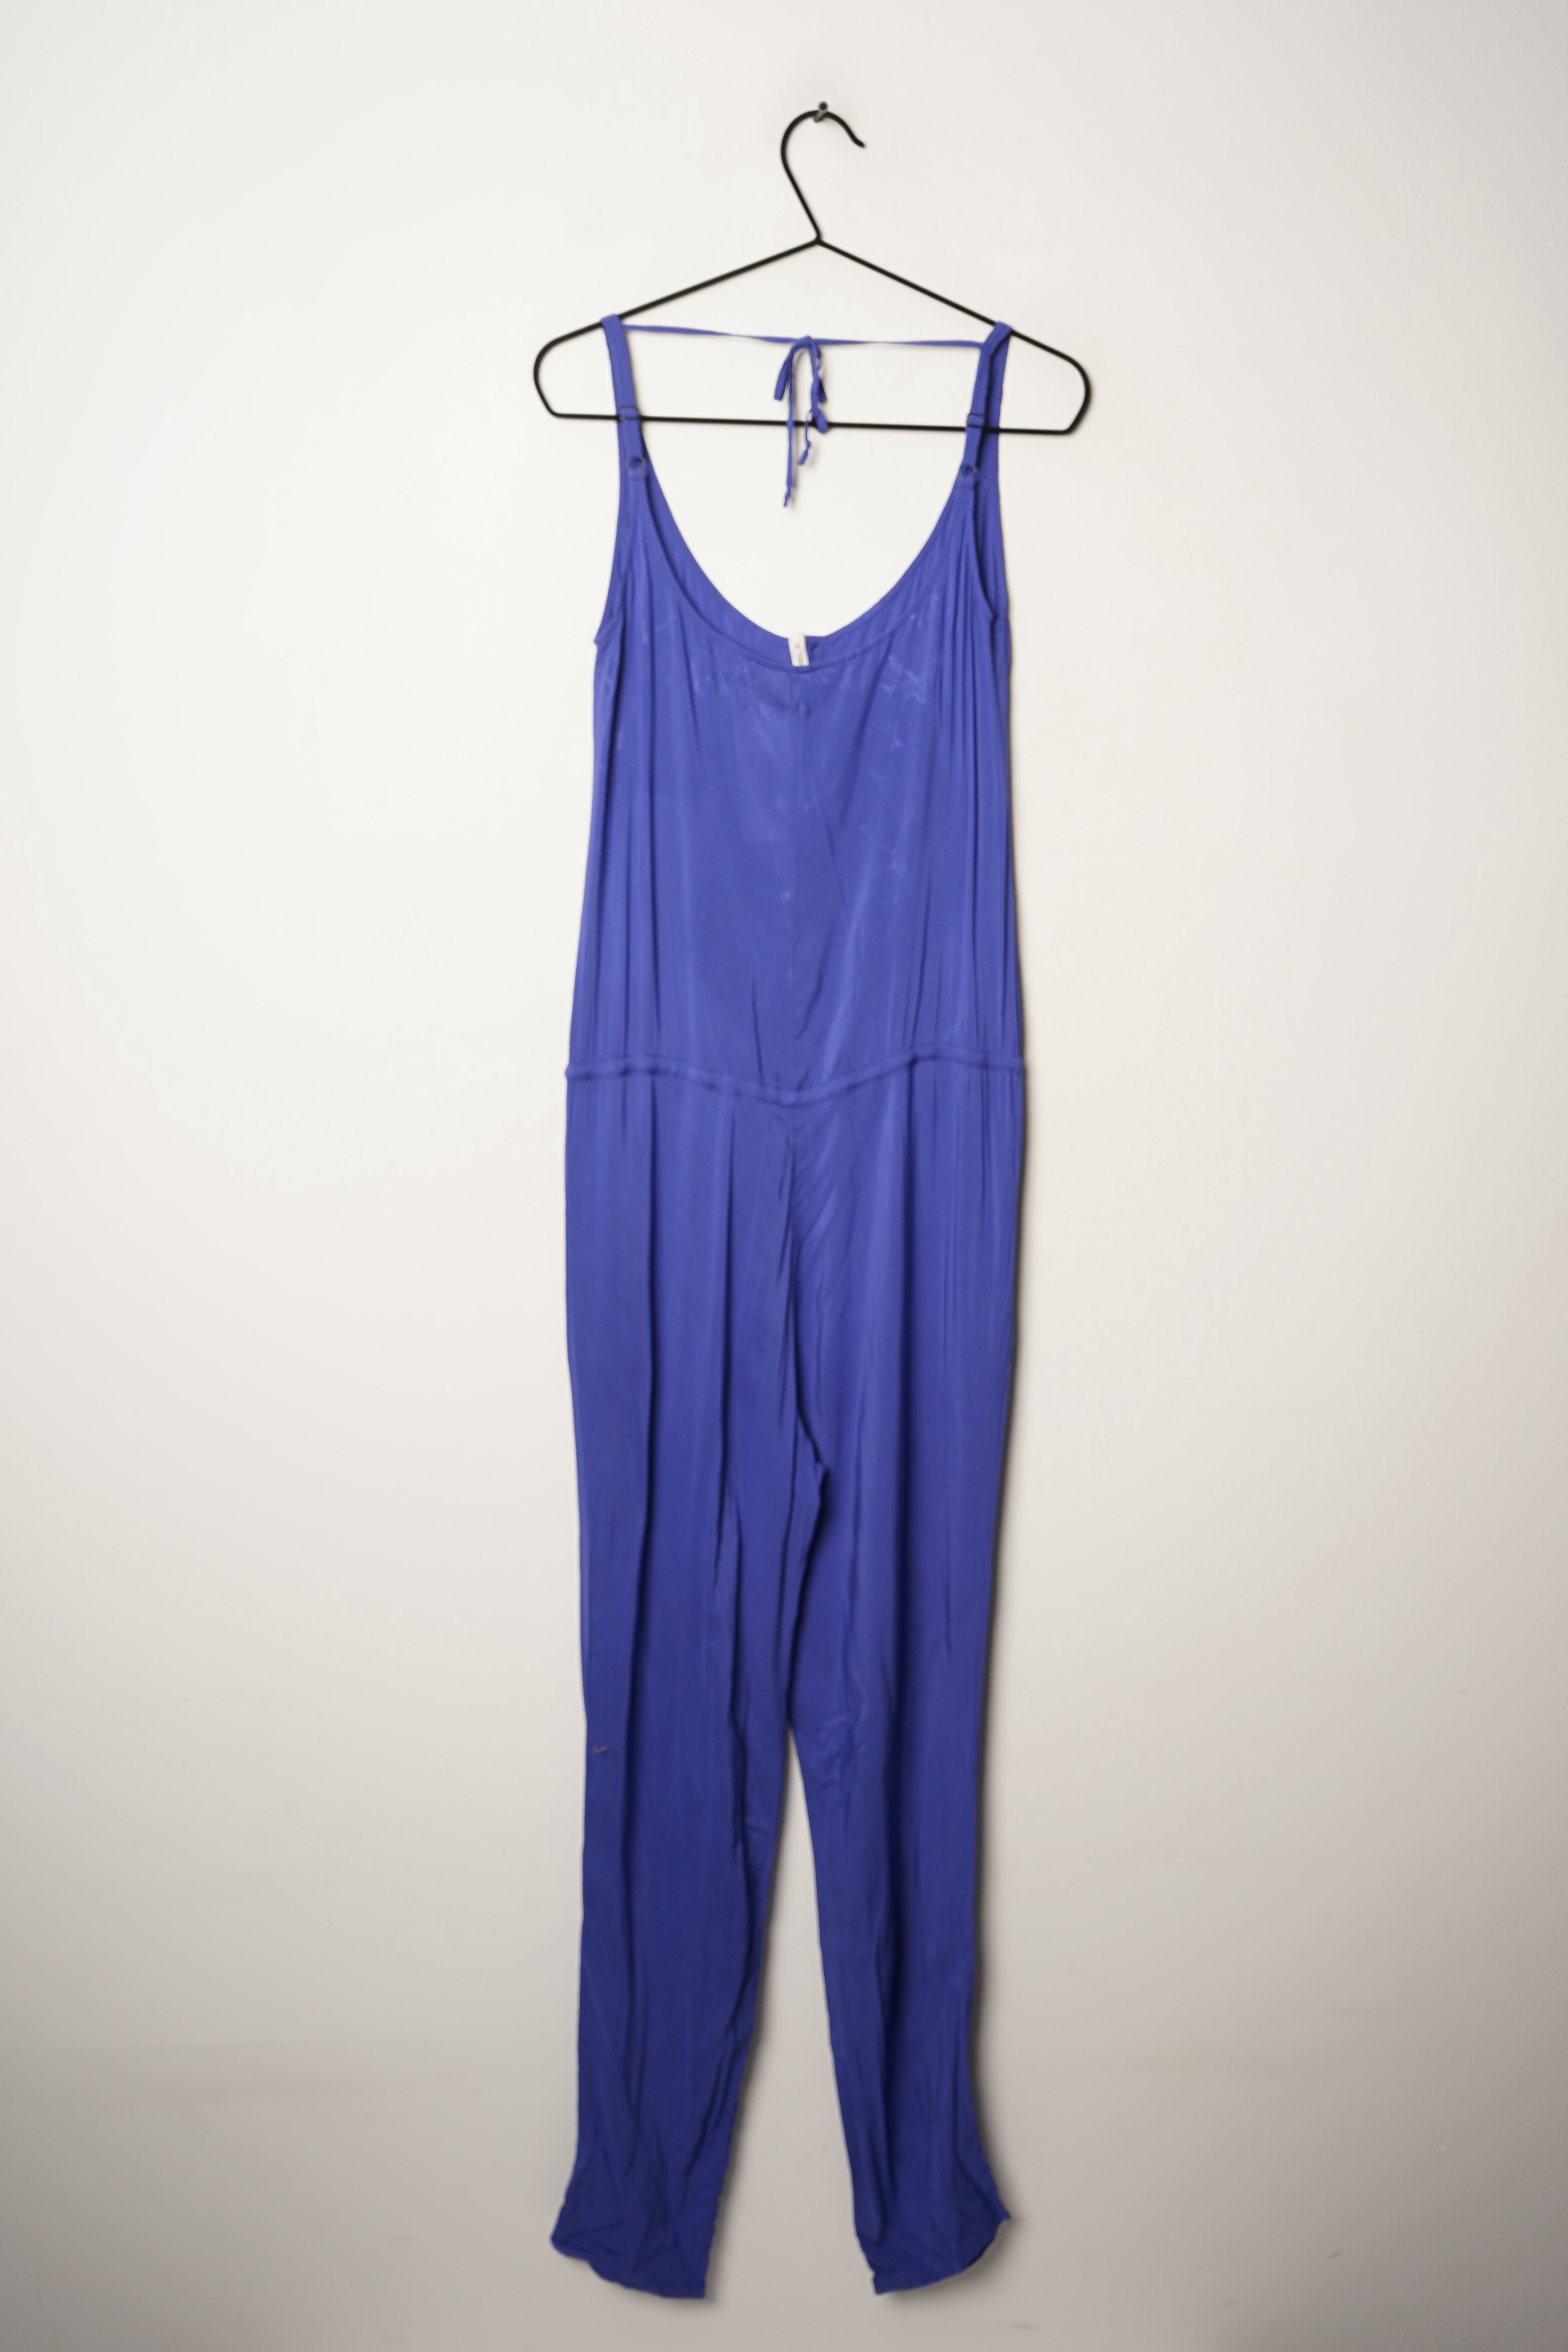 O'Neill Jumpsuit / Overall Blau Gr.S